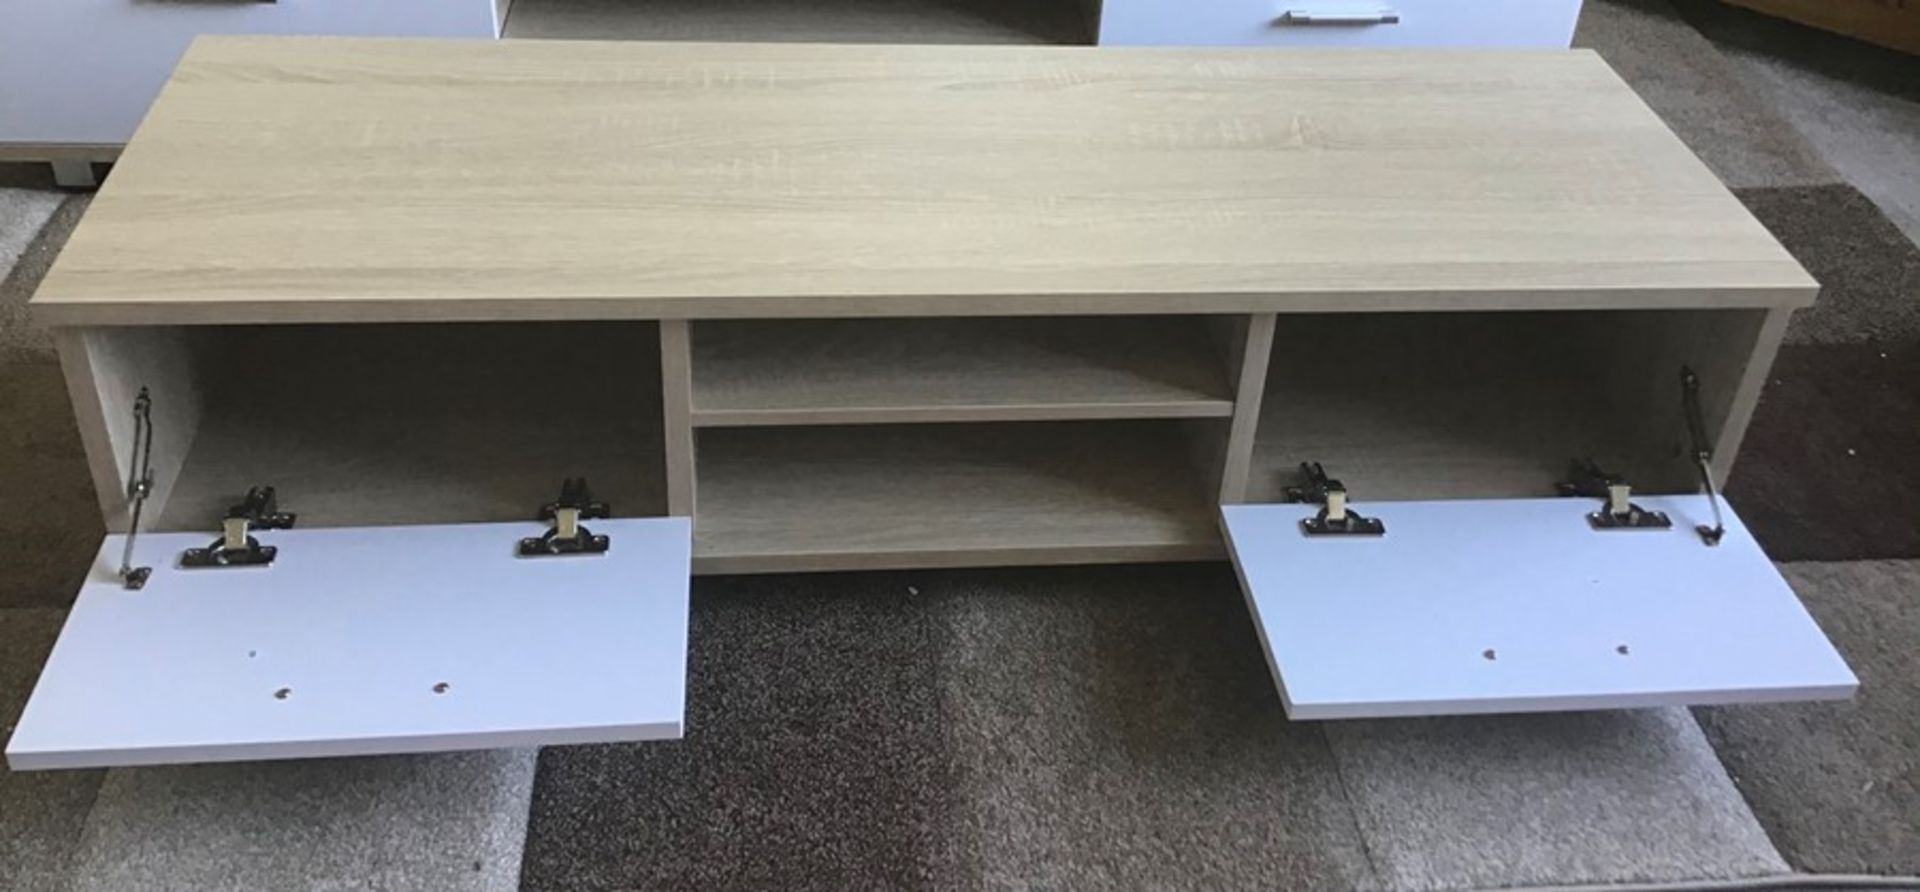 Oak and white 128cm TV stand, brand new, flat packed and boxed. RRP Circa £100.00 |1x Box - Image 2 of 3